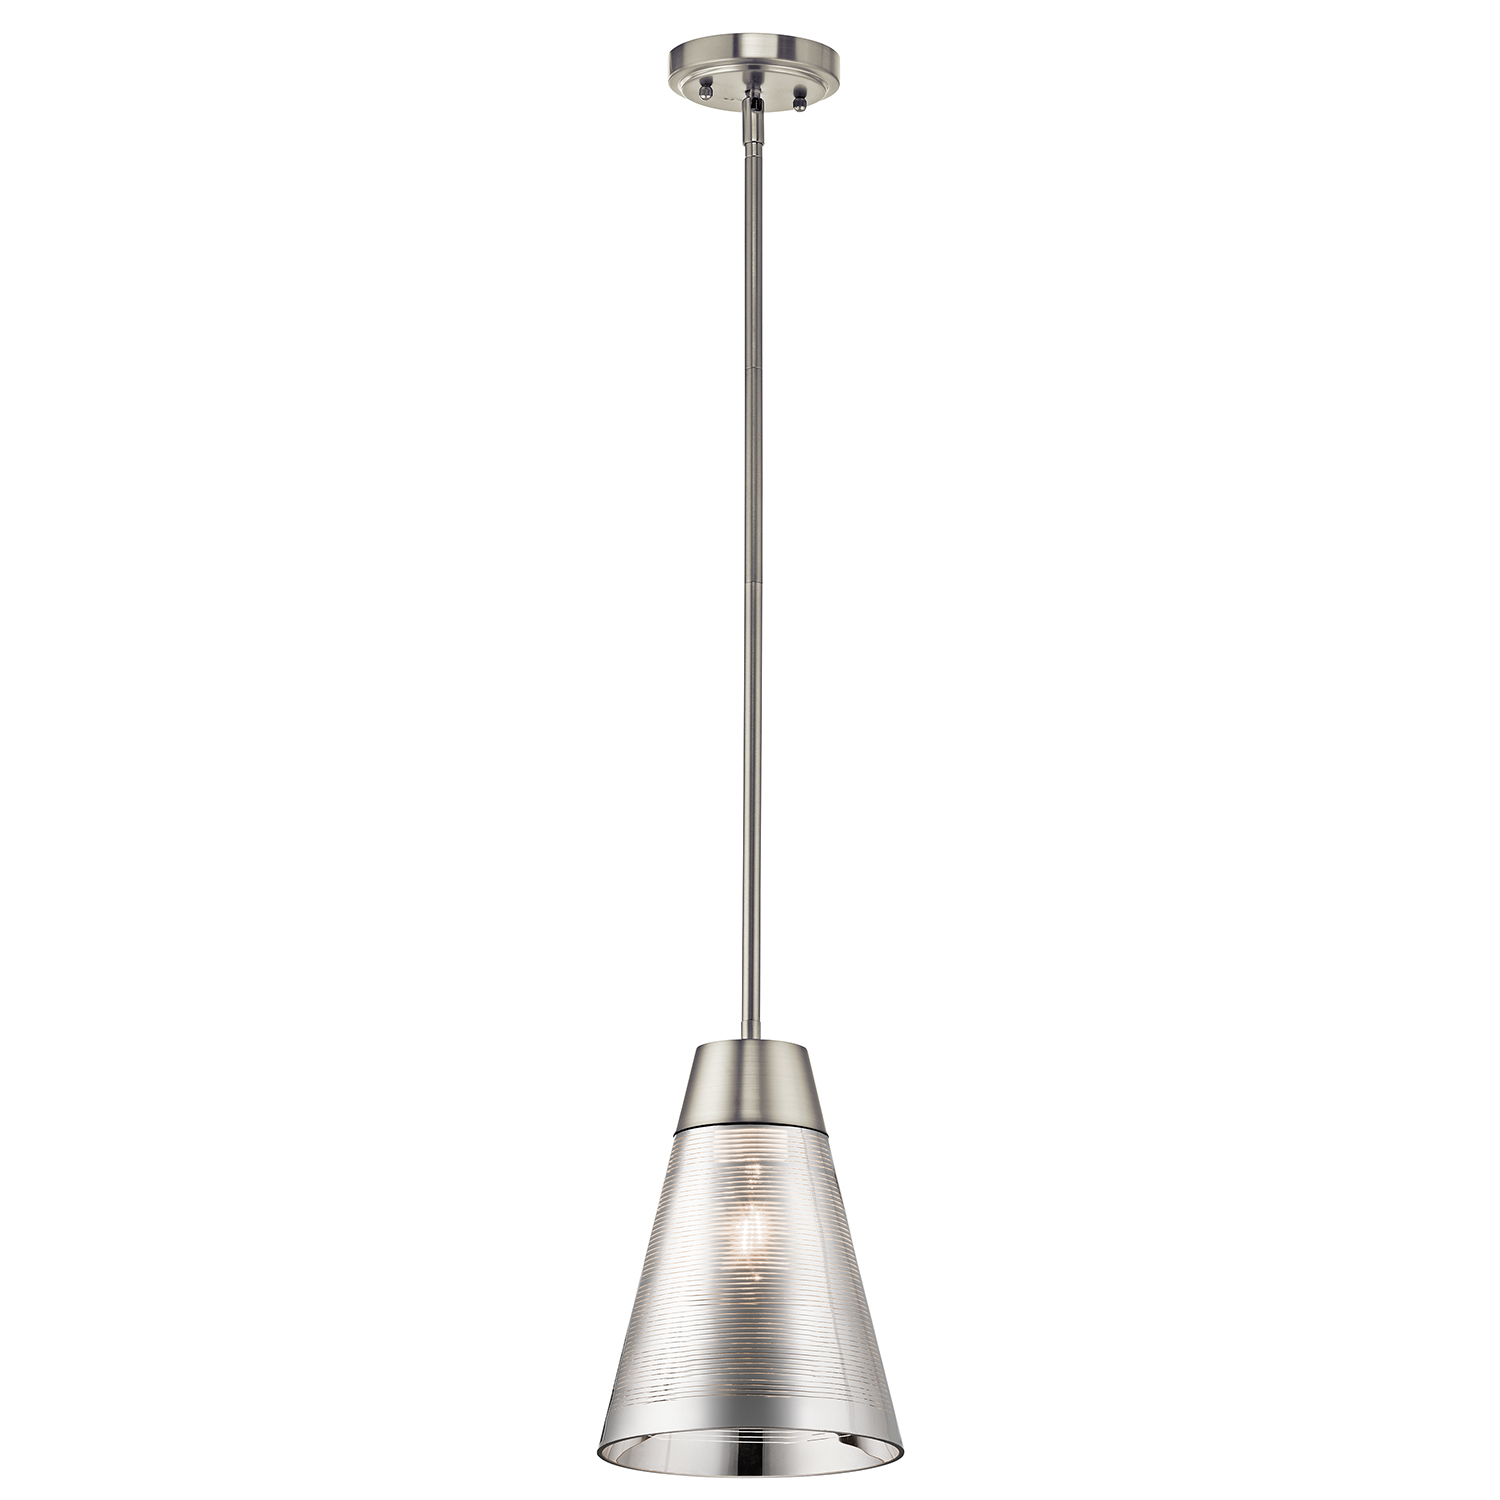 Primary image for Kichler 43792NI Chn Mini Pendants 8in Pendants 1-light